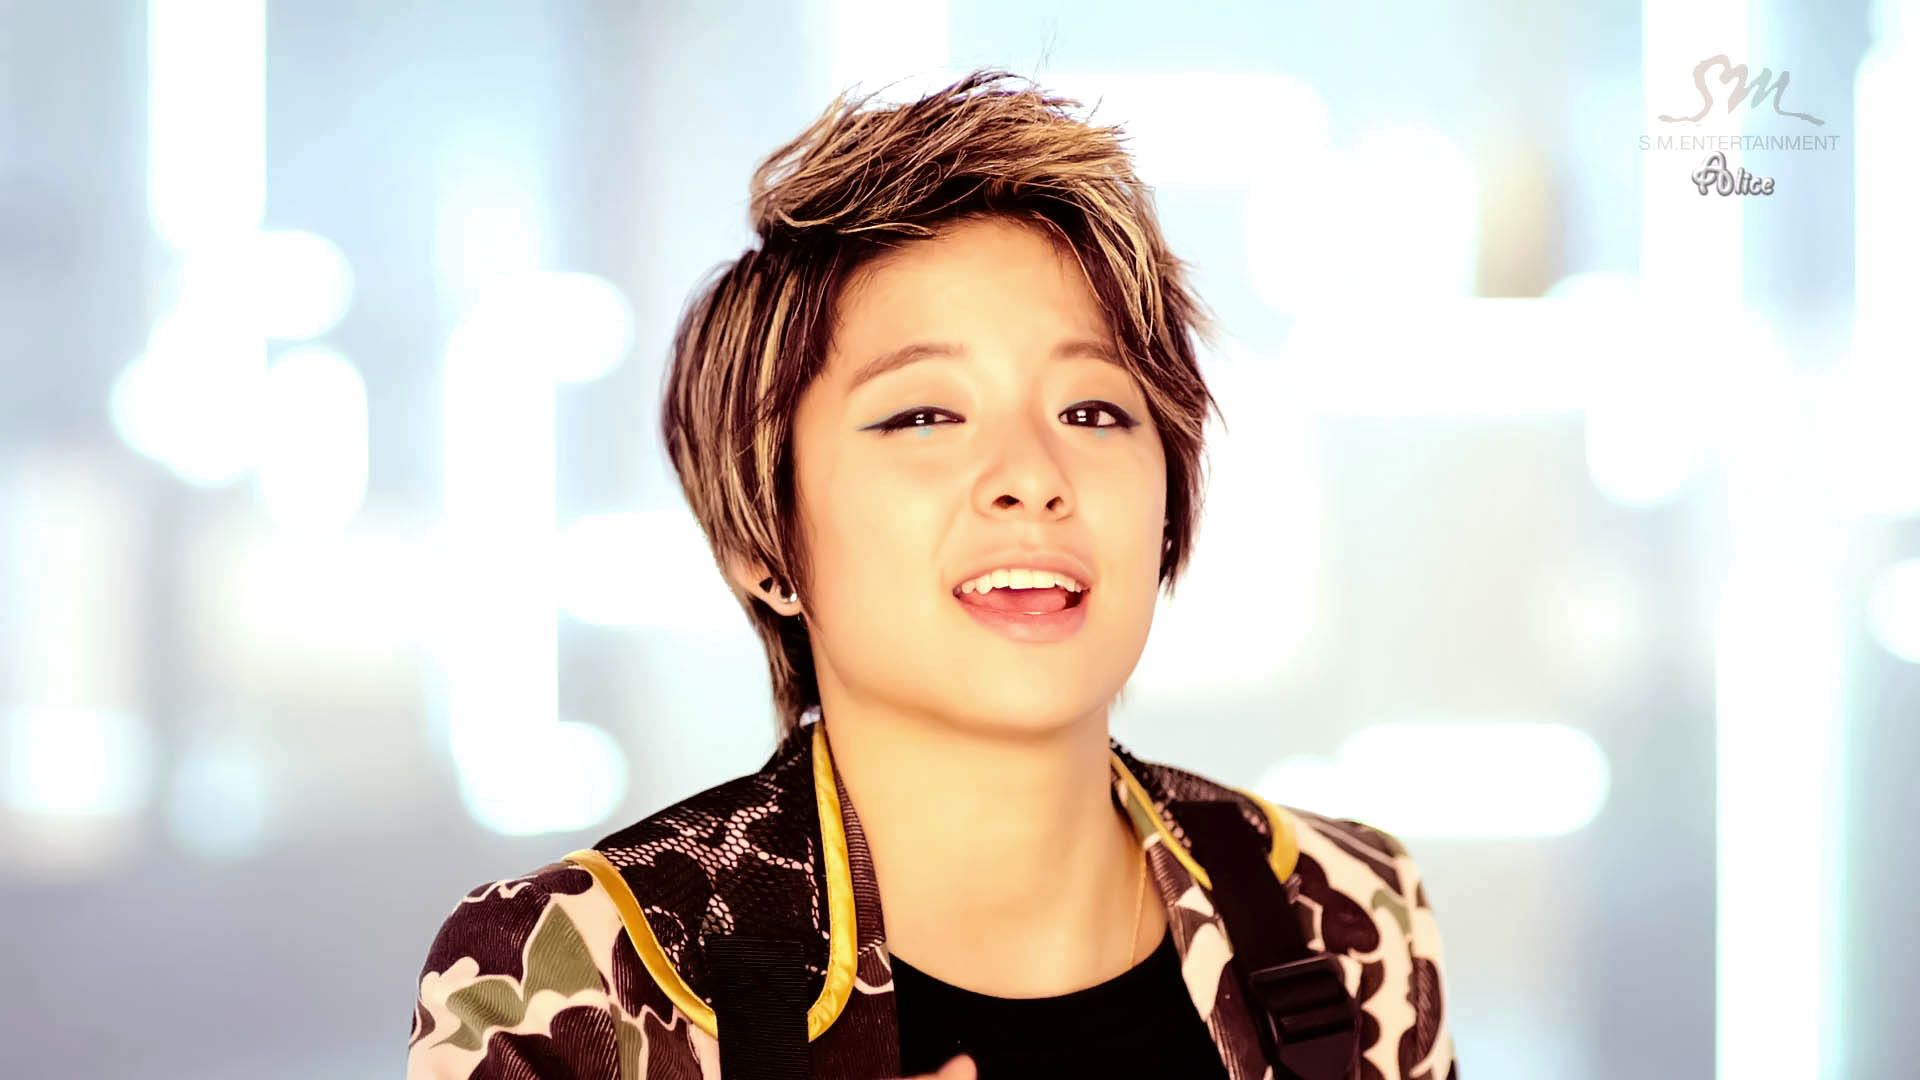 Amber Liu, HD Wallpaper - Asiachan KPOP/JPOP Image Board F(x) Electric Shock Amber